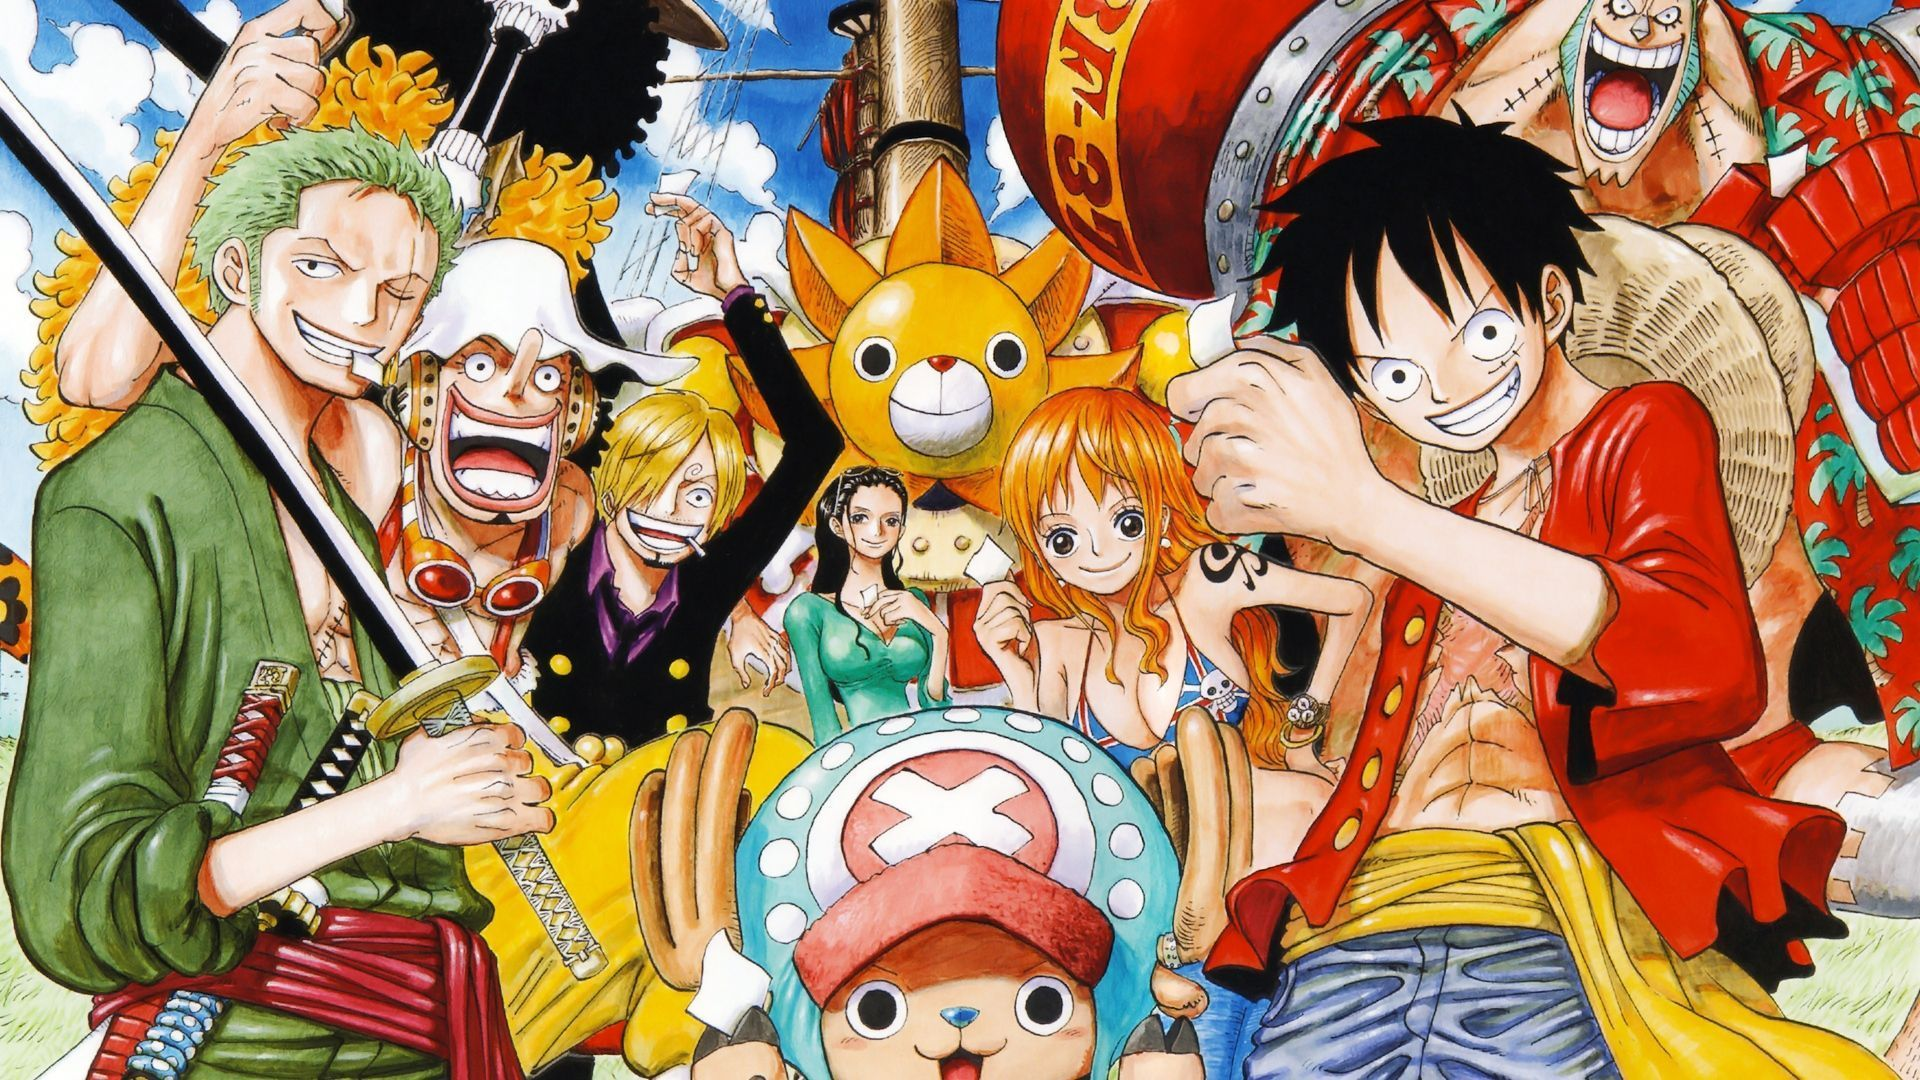 Search free one piece wallpapers on zedge and personalize your phone to suit you. Crew One Piece Wallpaper Widescreen #3084 Wallpaper | High ...